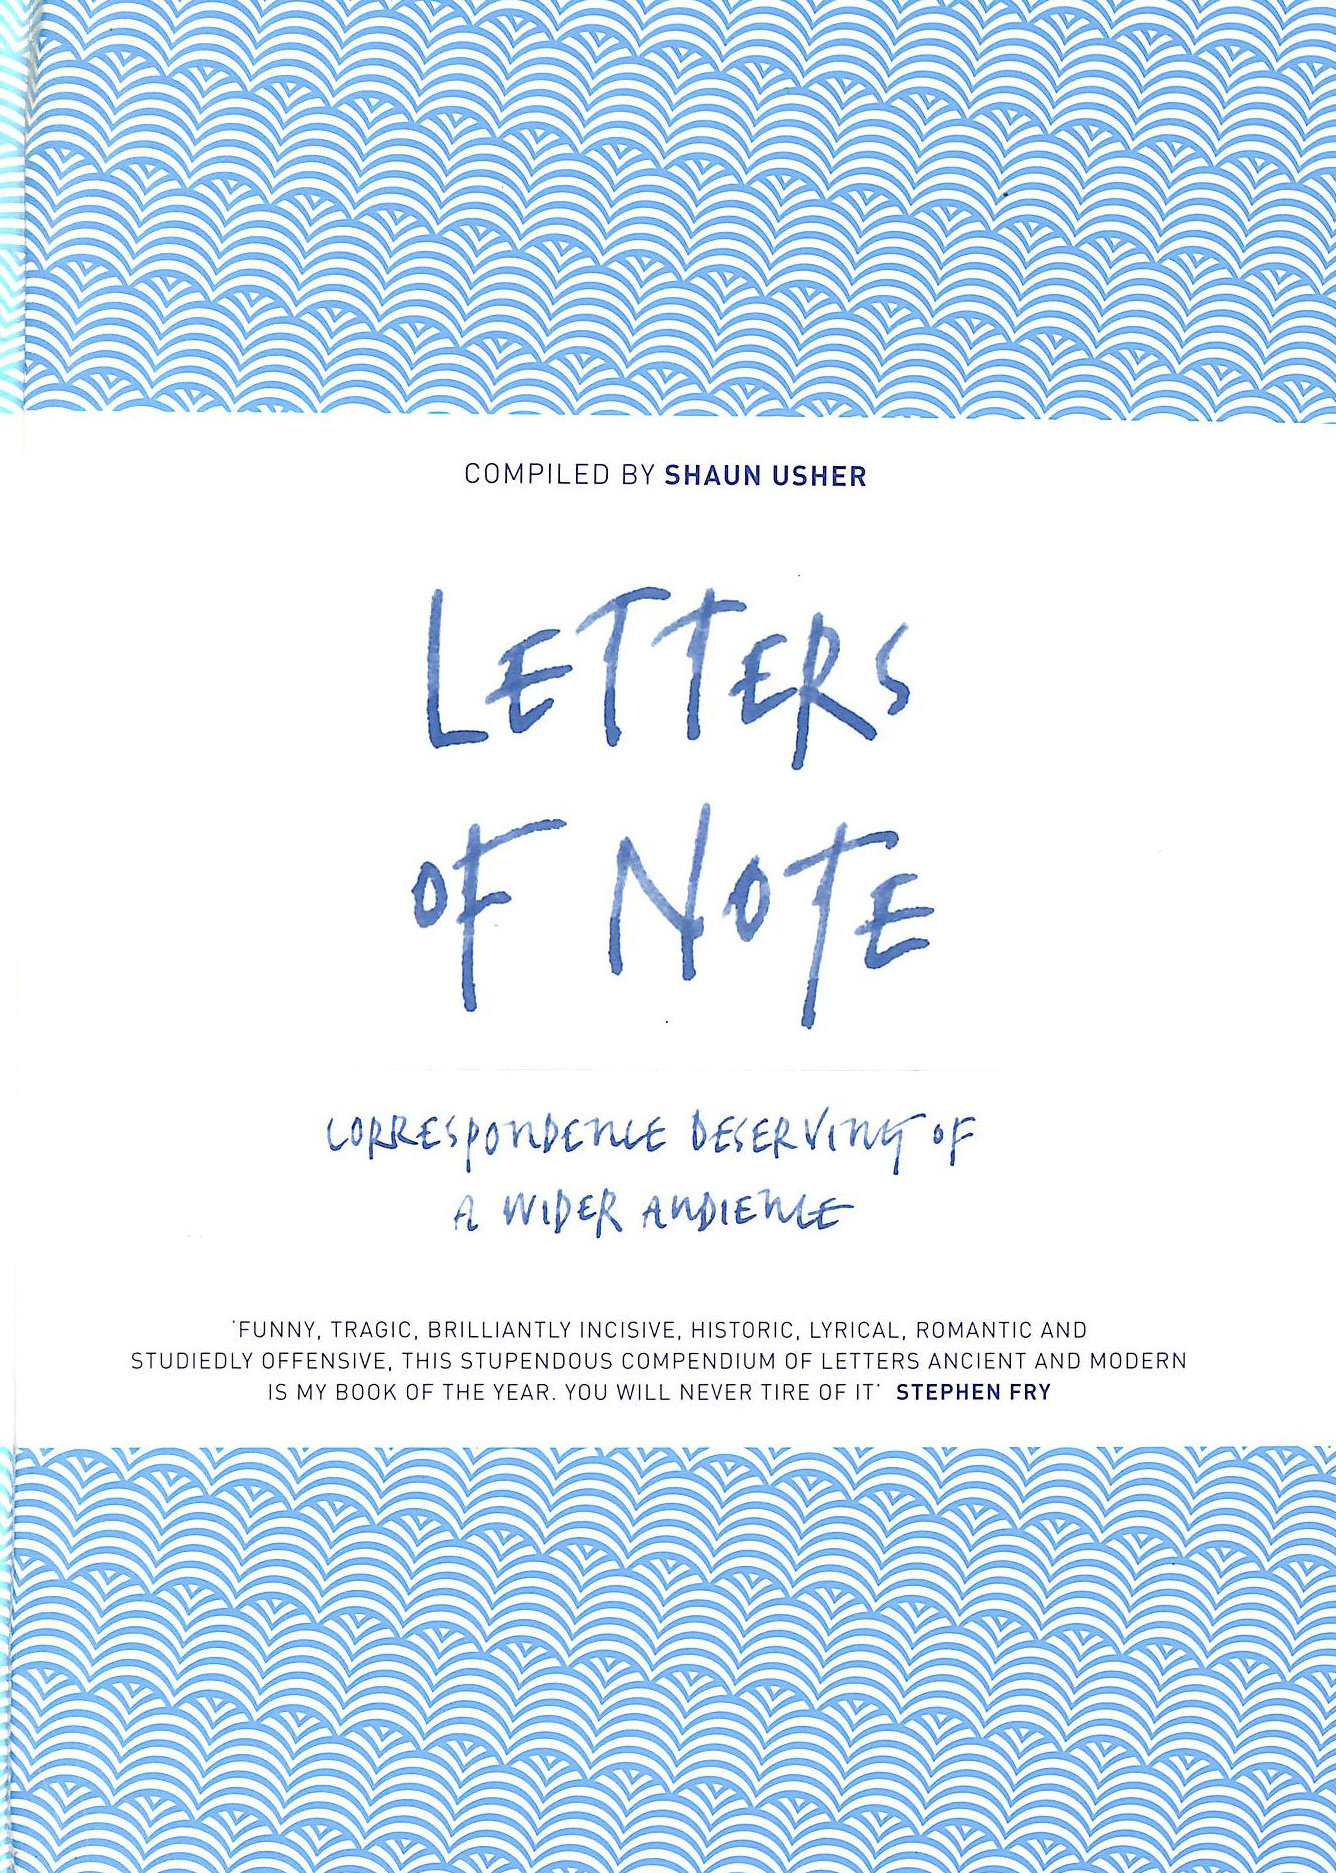 Image for Letters of Note: Correspondence Deserving of a Wider Audience